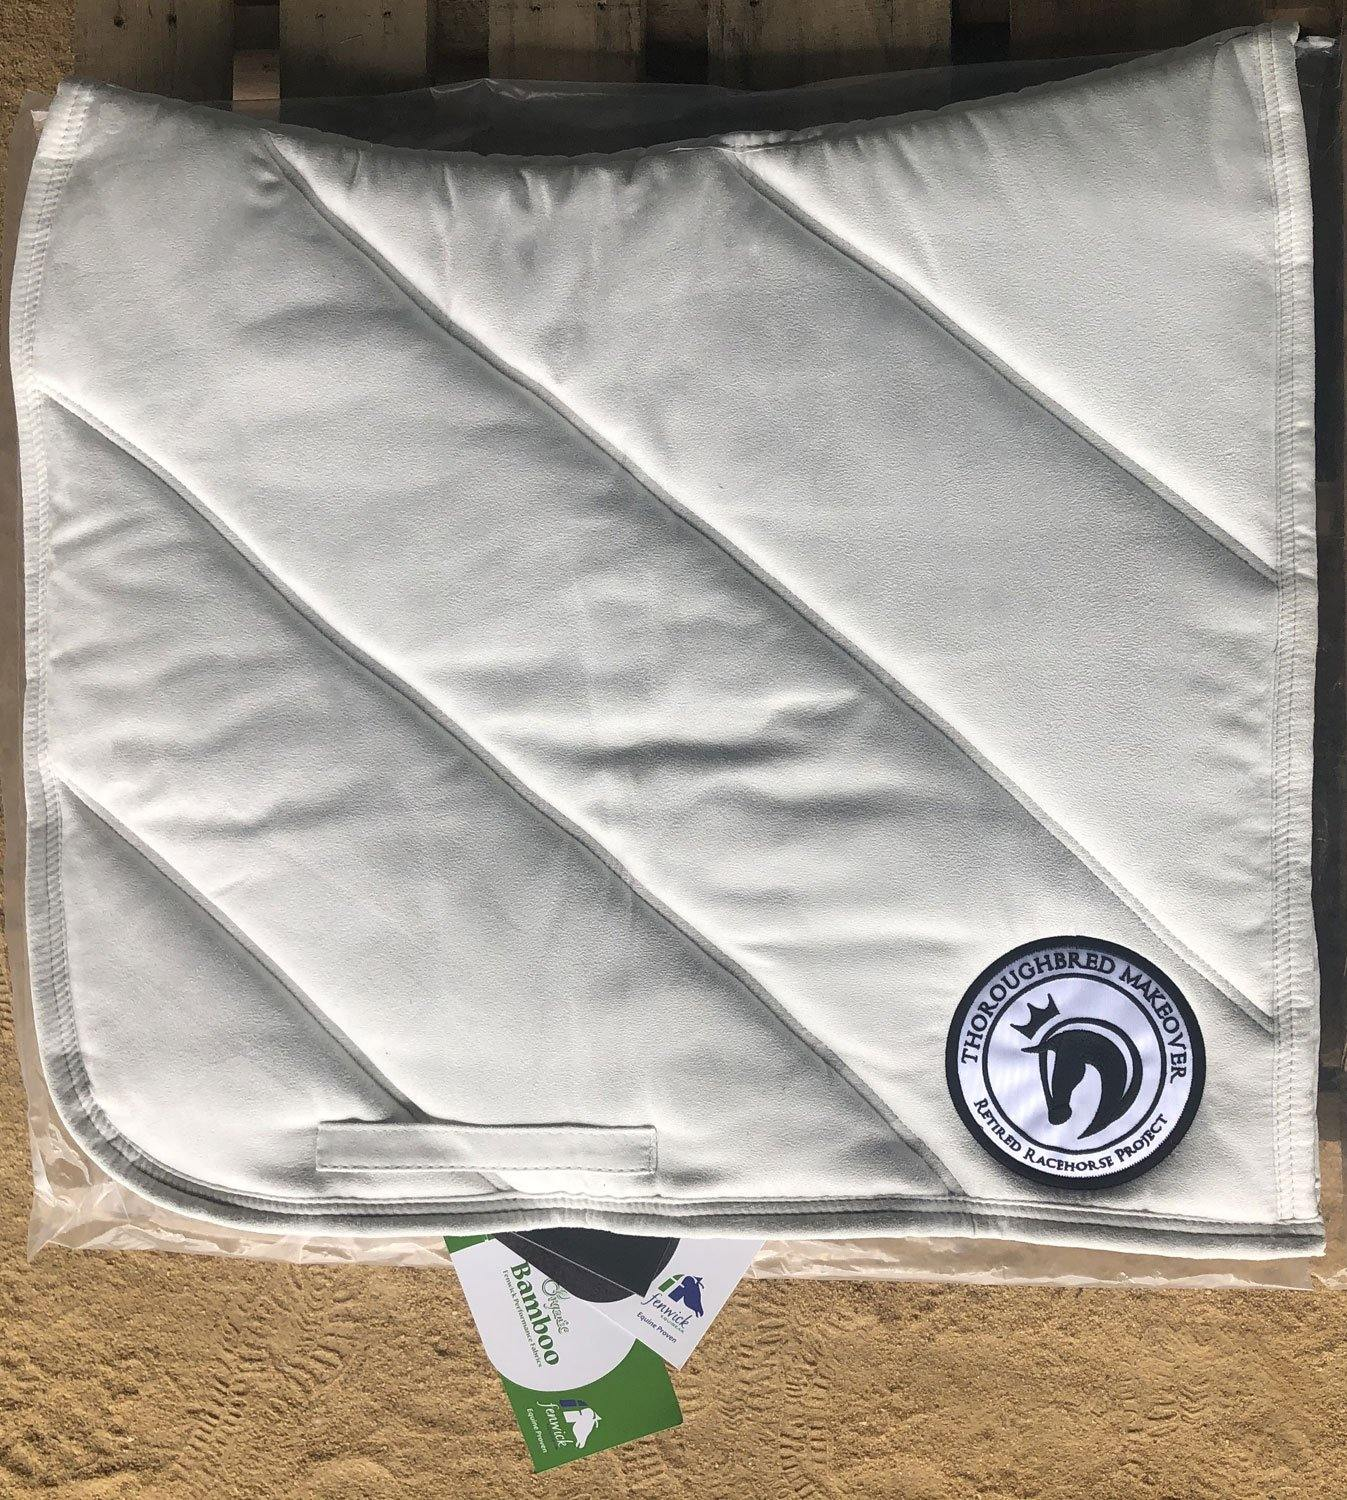 ★ Bamboo Saddle Pad - Retired Racehorse Project Thoroughbred Makeover ★ - Fenwick Equestrian